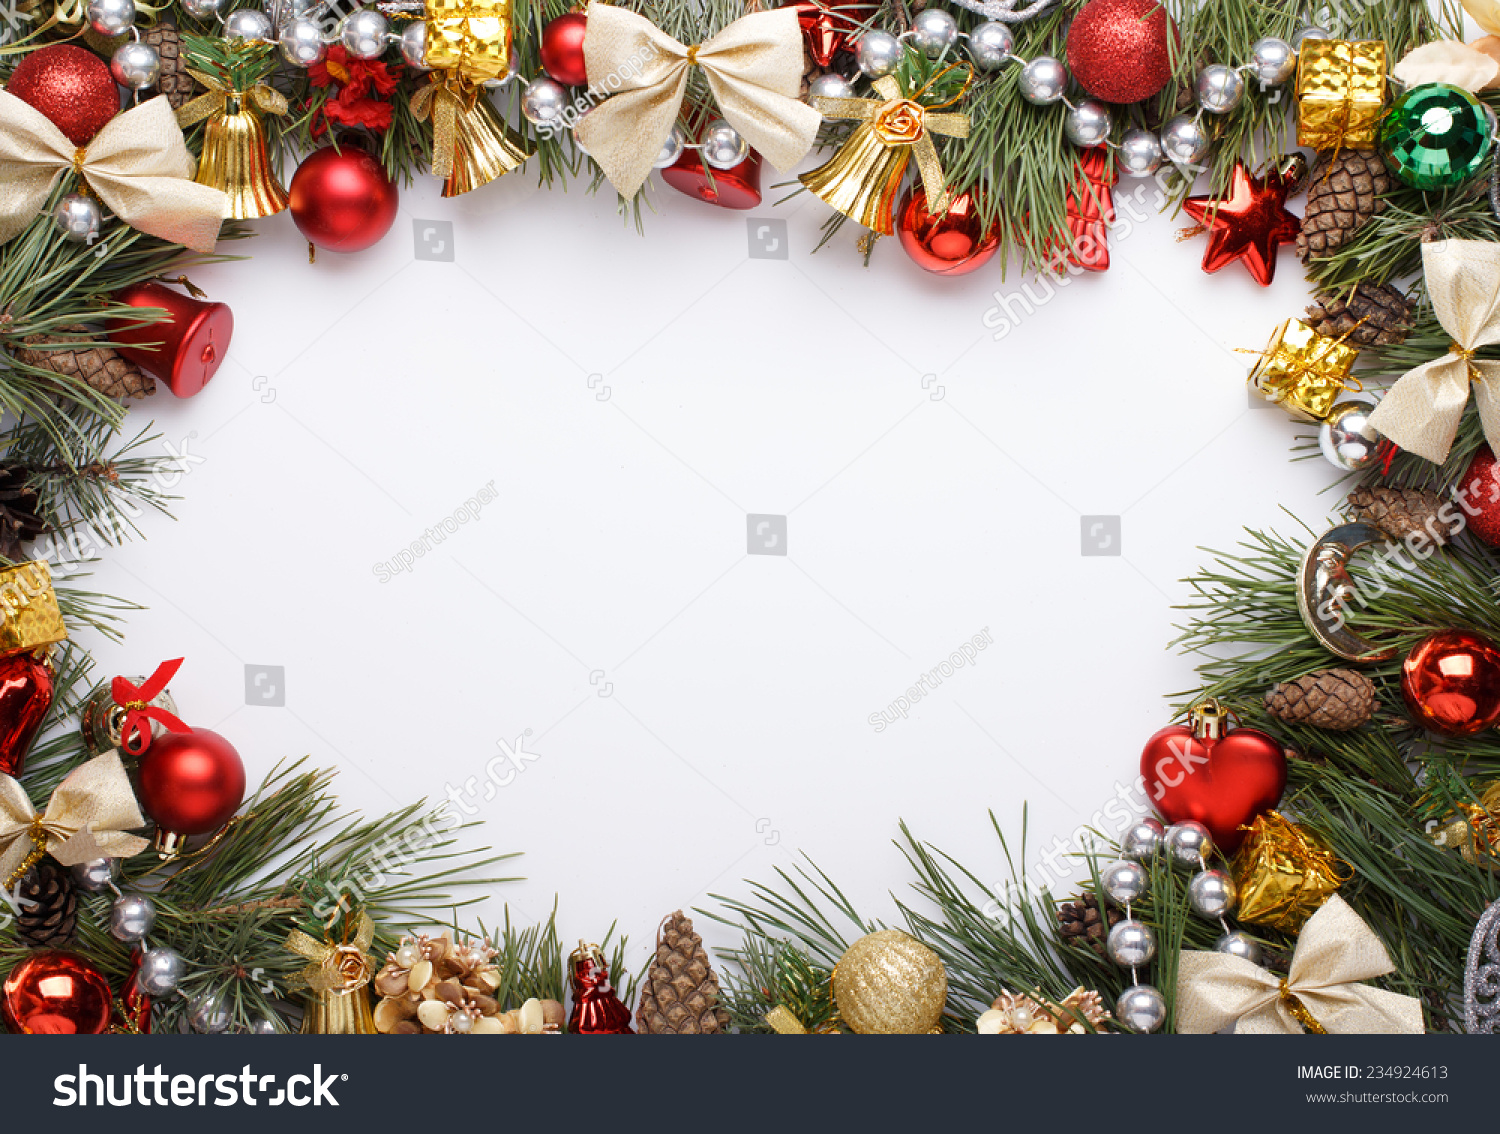 Christmas Frame Christmas Ornaments Decorations Stock Photo (Edit ...